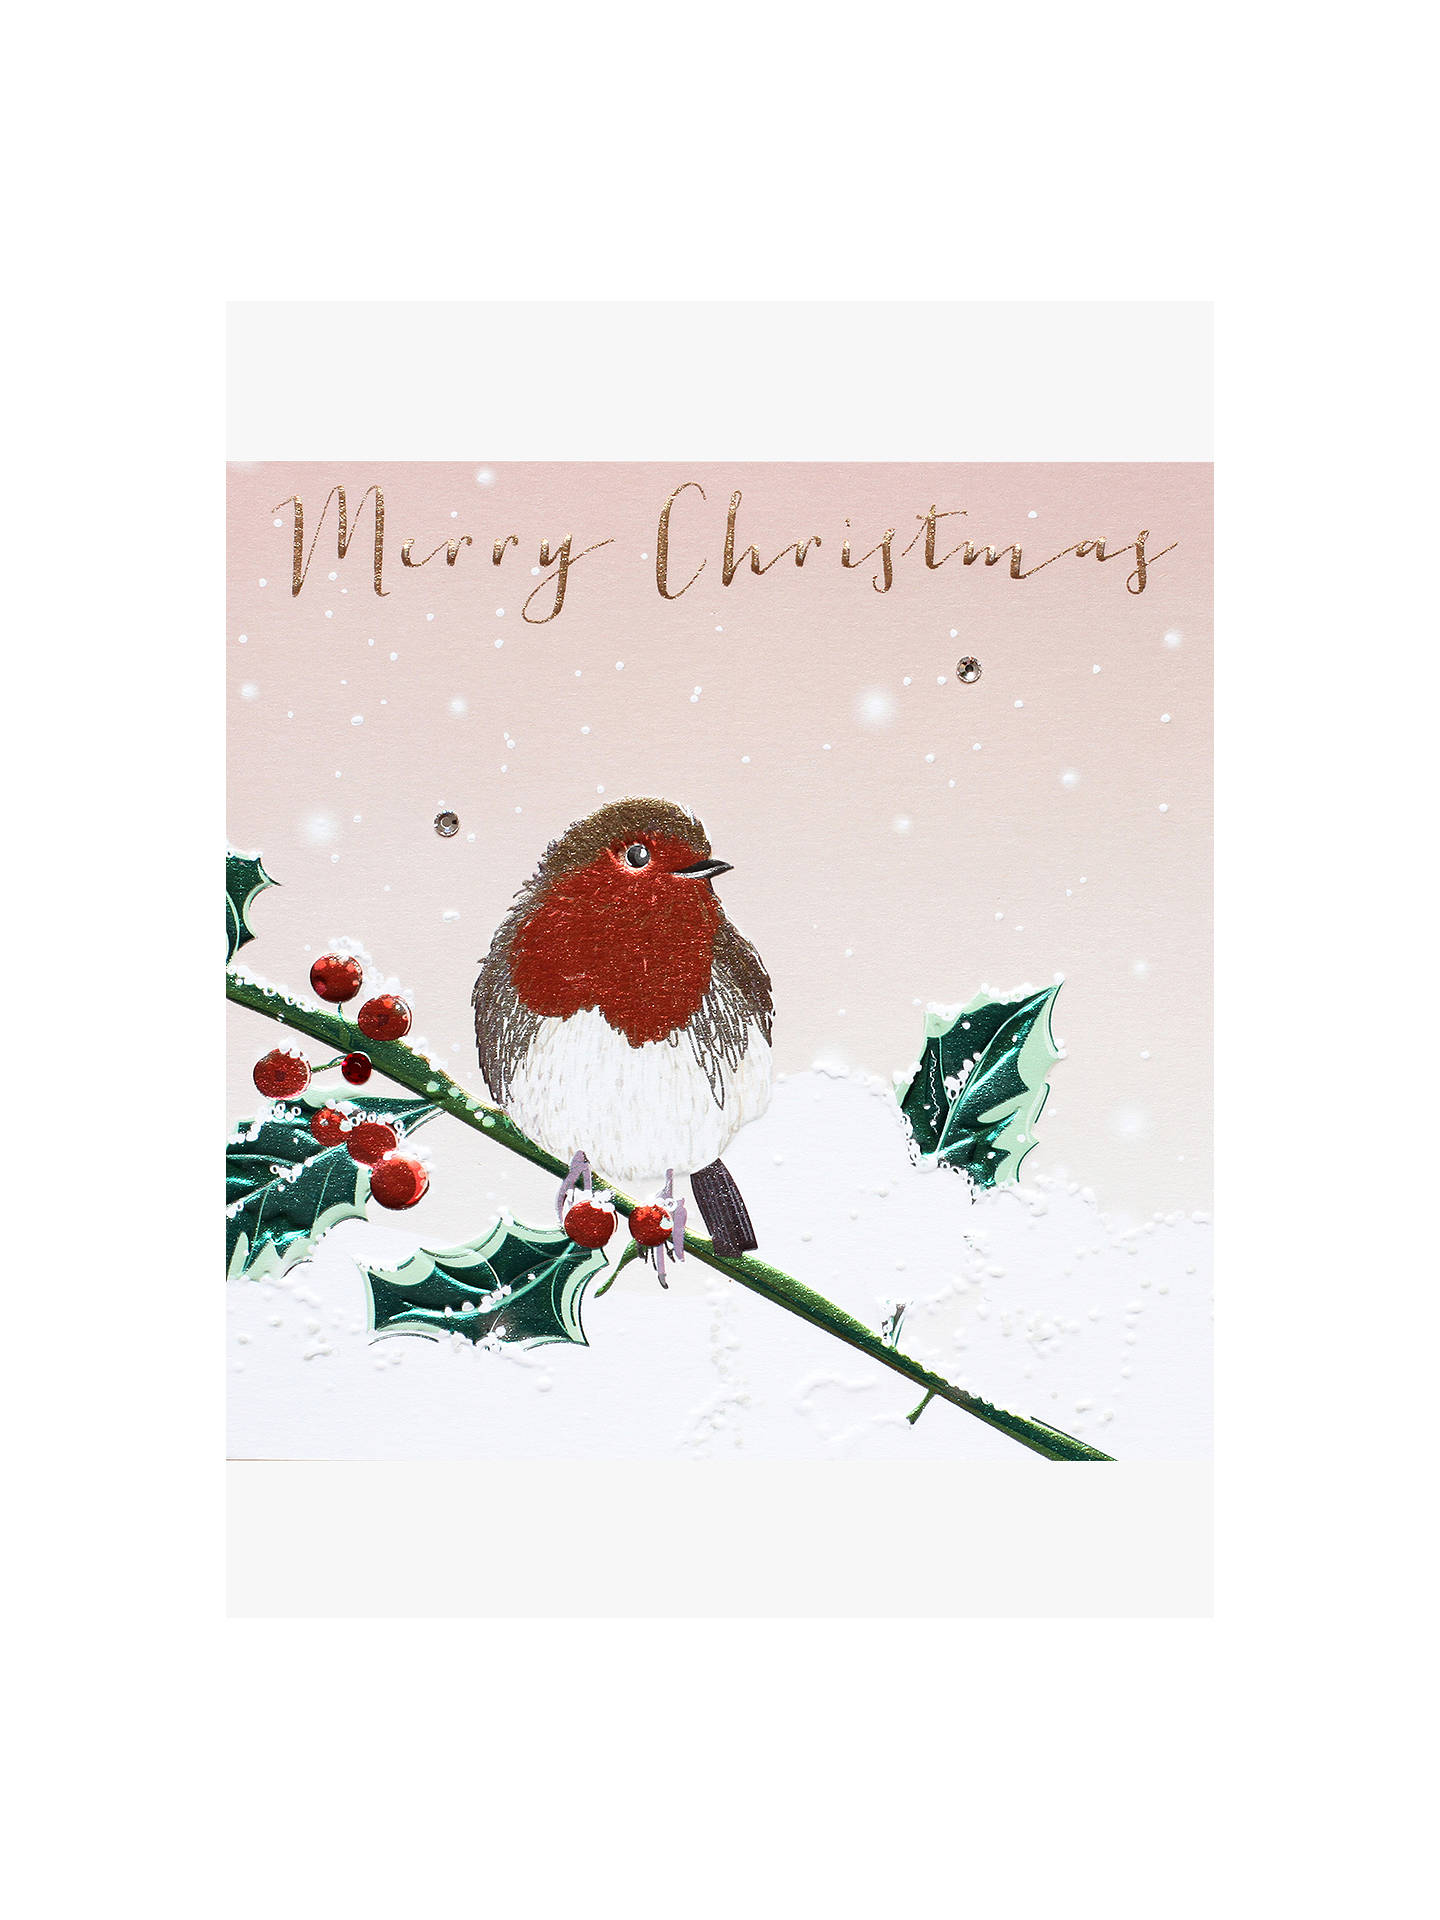 BuyBelly Button Designs Robin on Branch Christmas Card Online at johnlewis.com